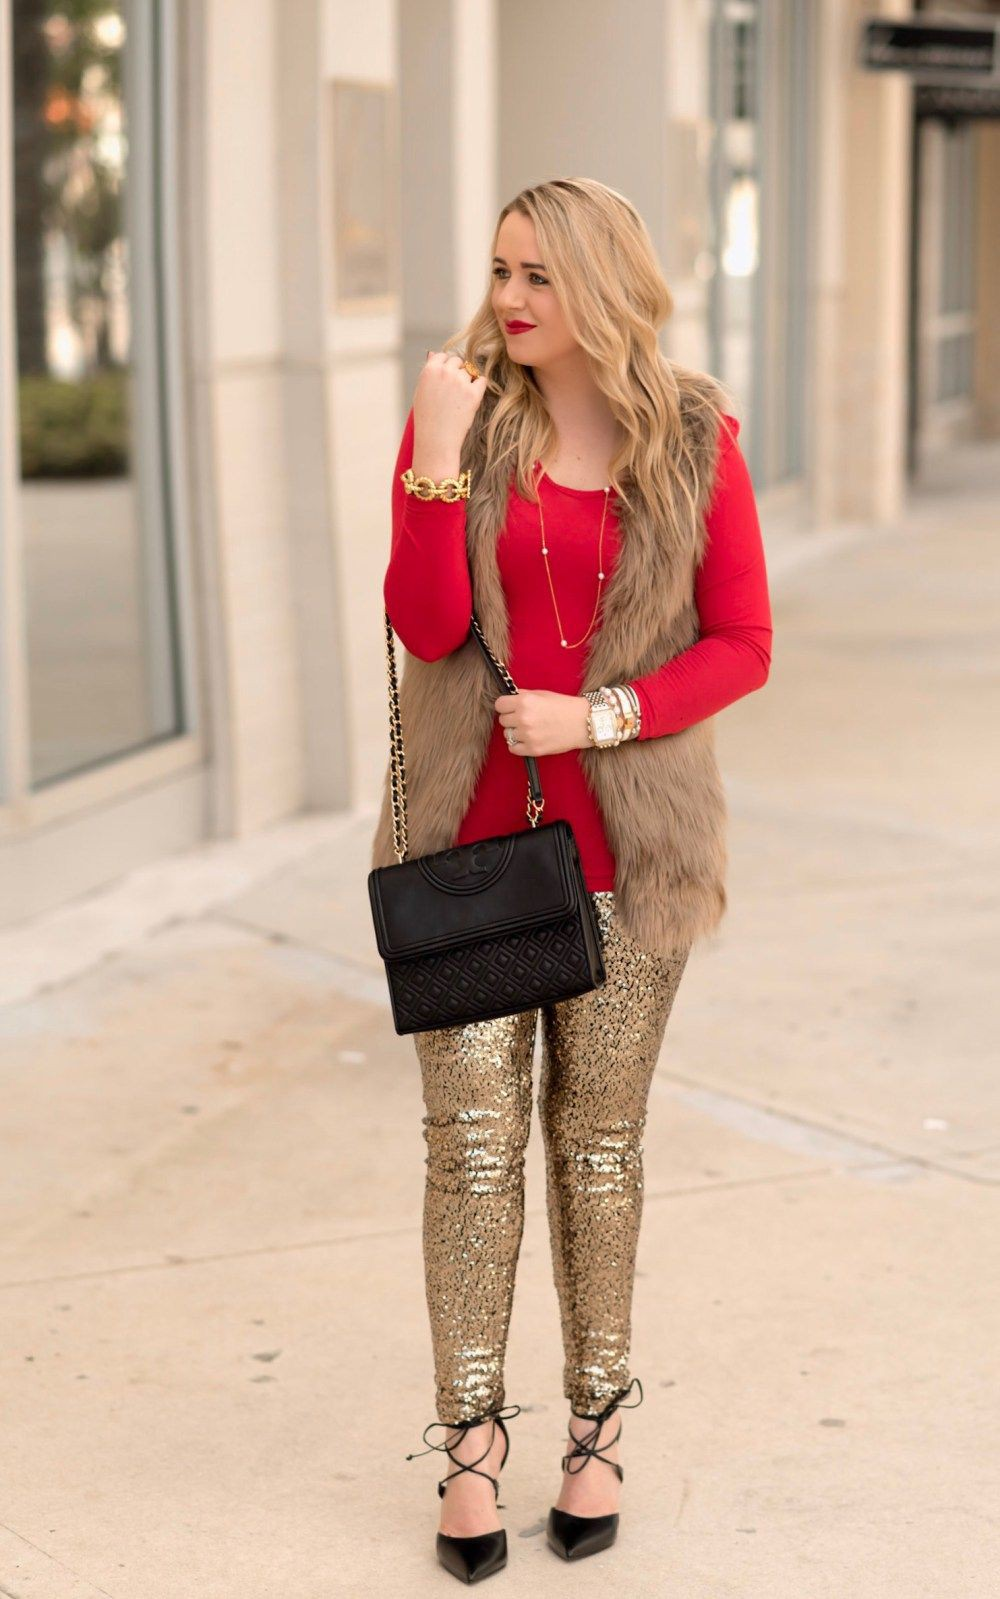 Pink and red outfit ideas with leggings, tights, jeans